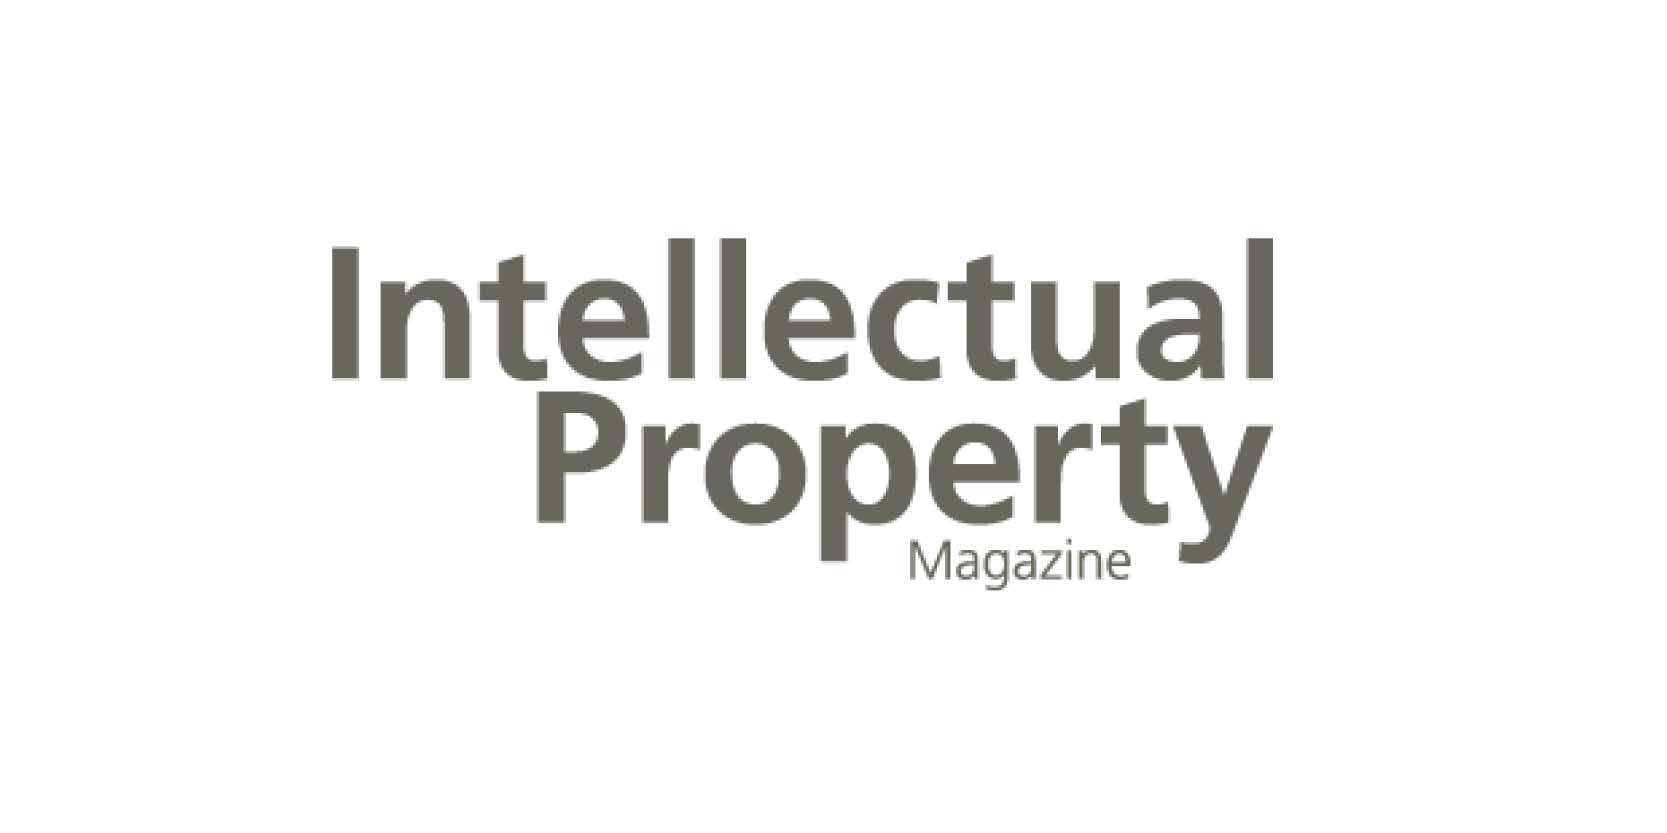 Intellectual Property Magazine: Life in the shadows – How criminals exploit valuable data